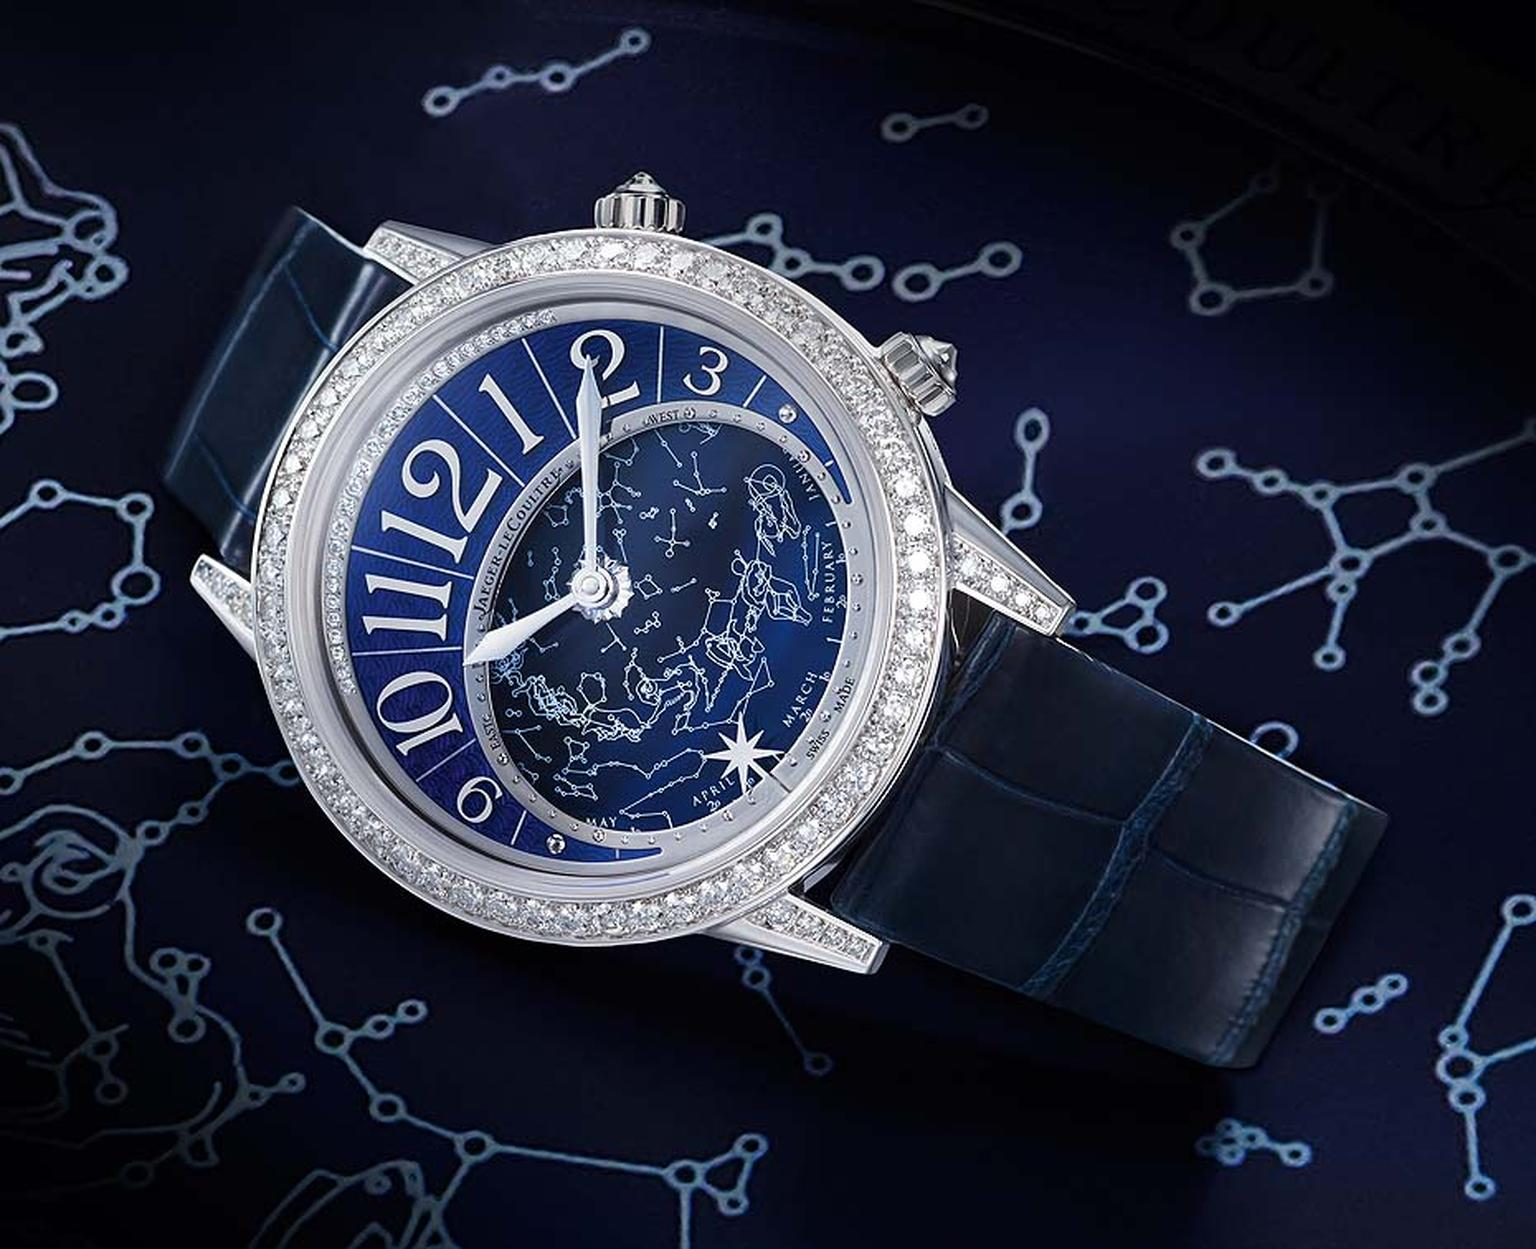 Jaeger-LeCoultre Rendez-Vous Celestial in white gold and diamonds.